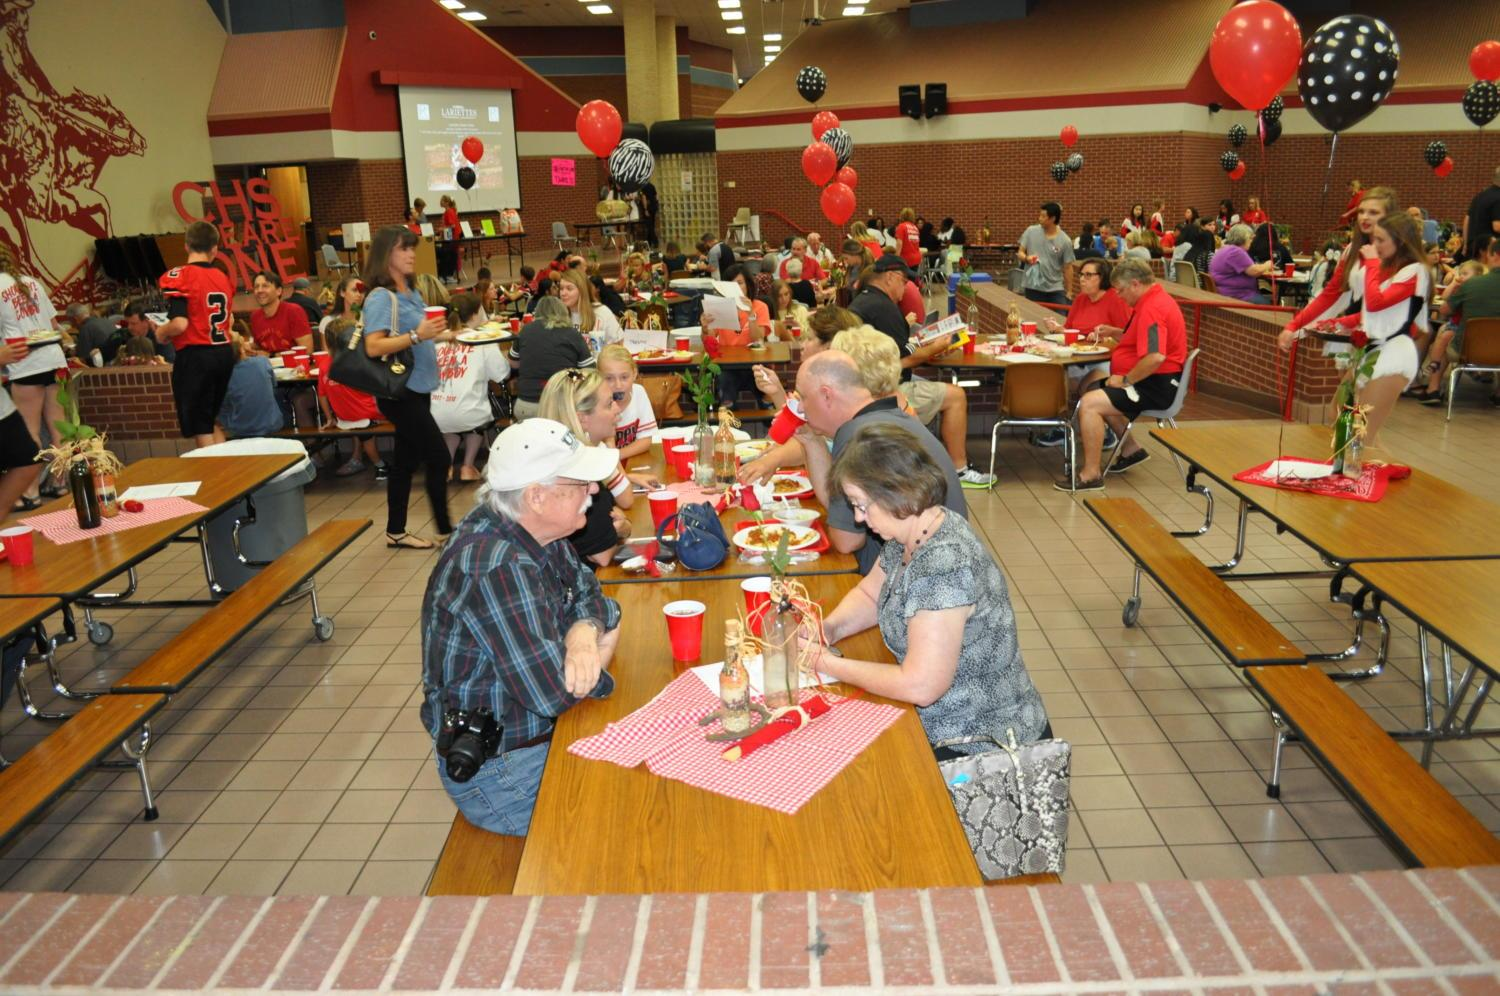 Coppell families gather together to enjoy a long-time tradition; the Spaghetti Dinner hosted by the Coppell High School Lariettes. The event allows families to enjoy food, fellowship and fun while supporting their school and community. Photo by Nolan Sanders